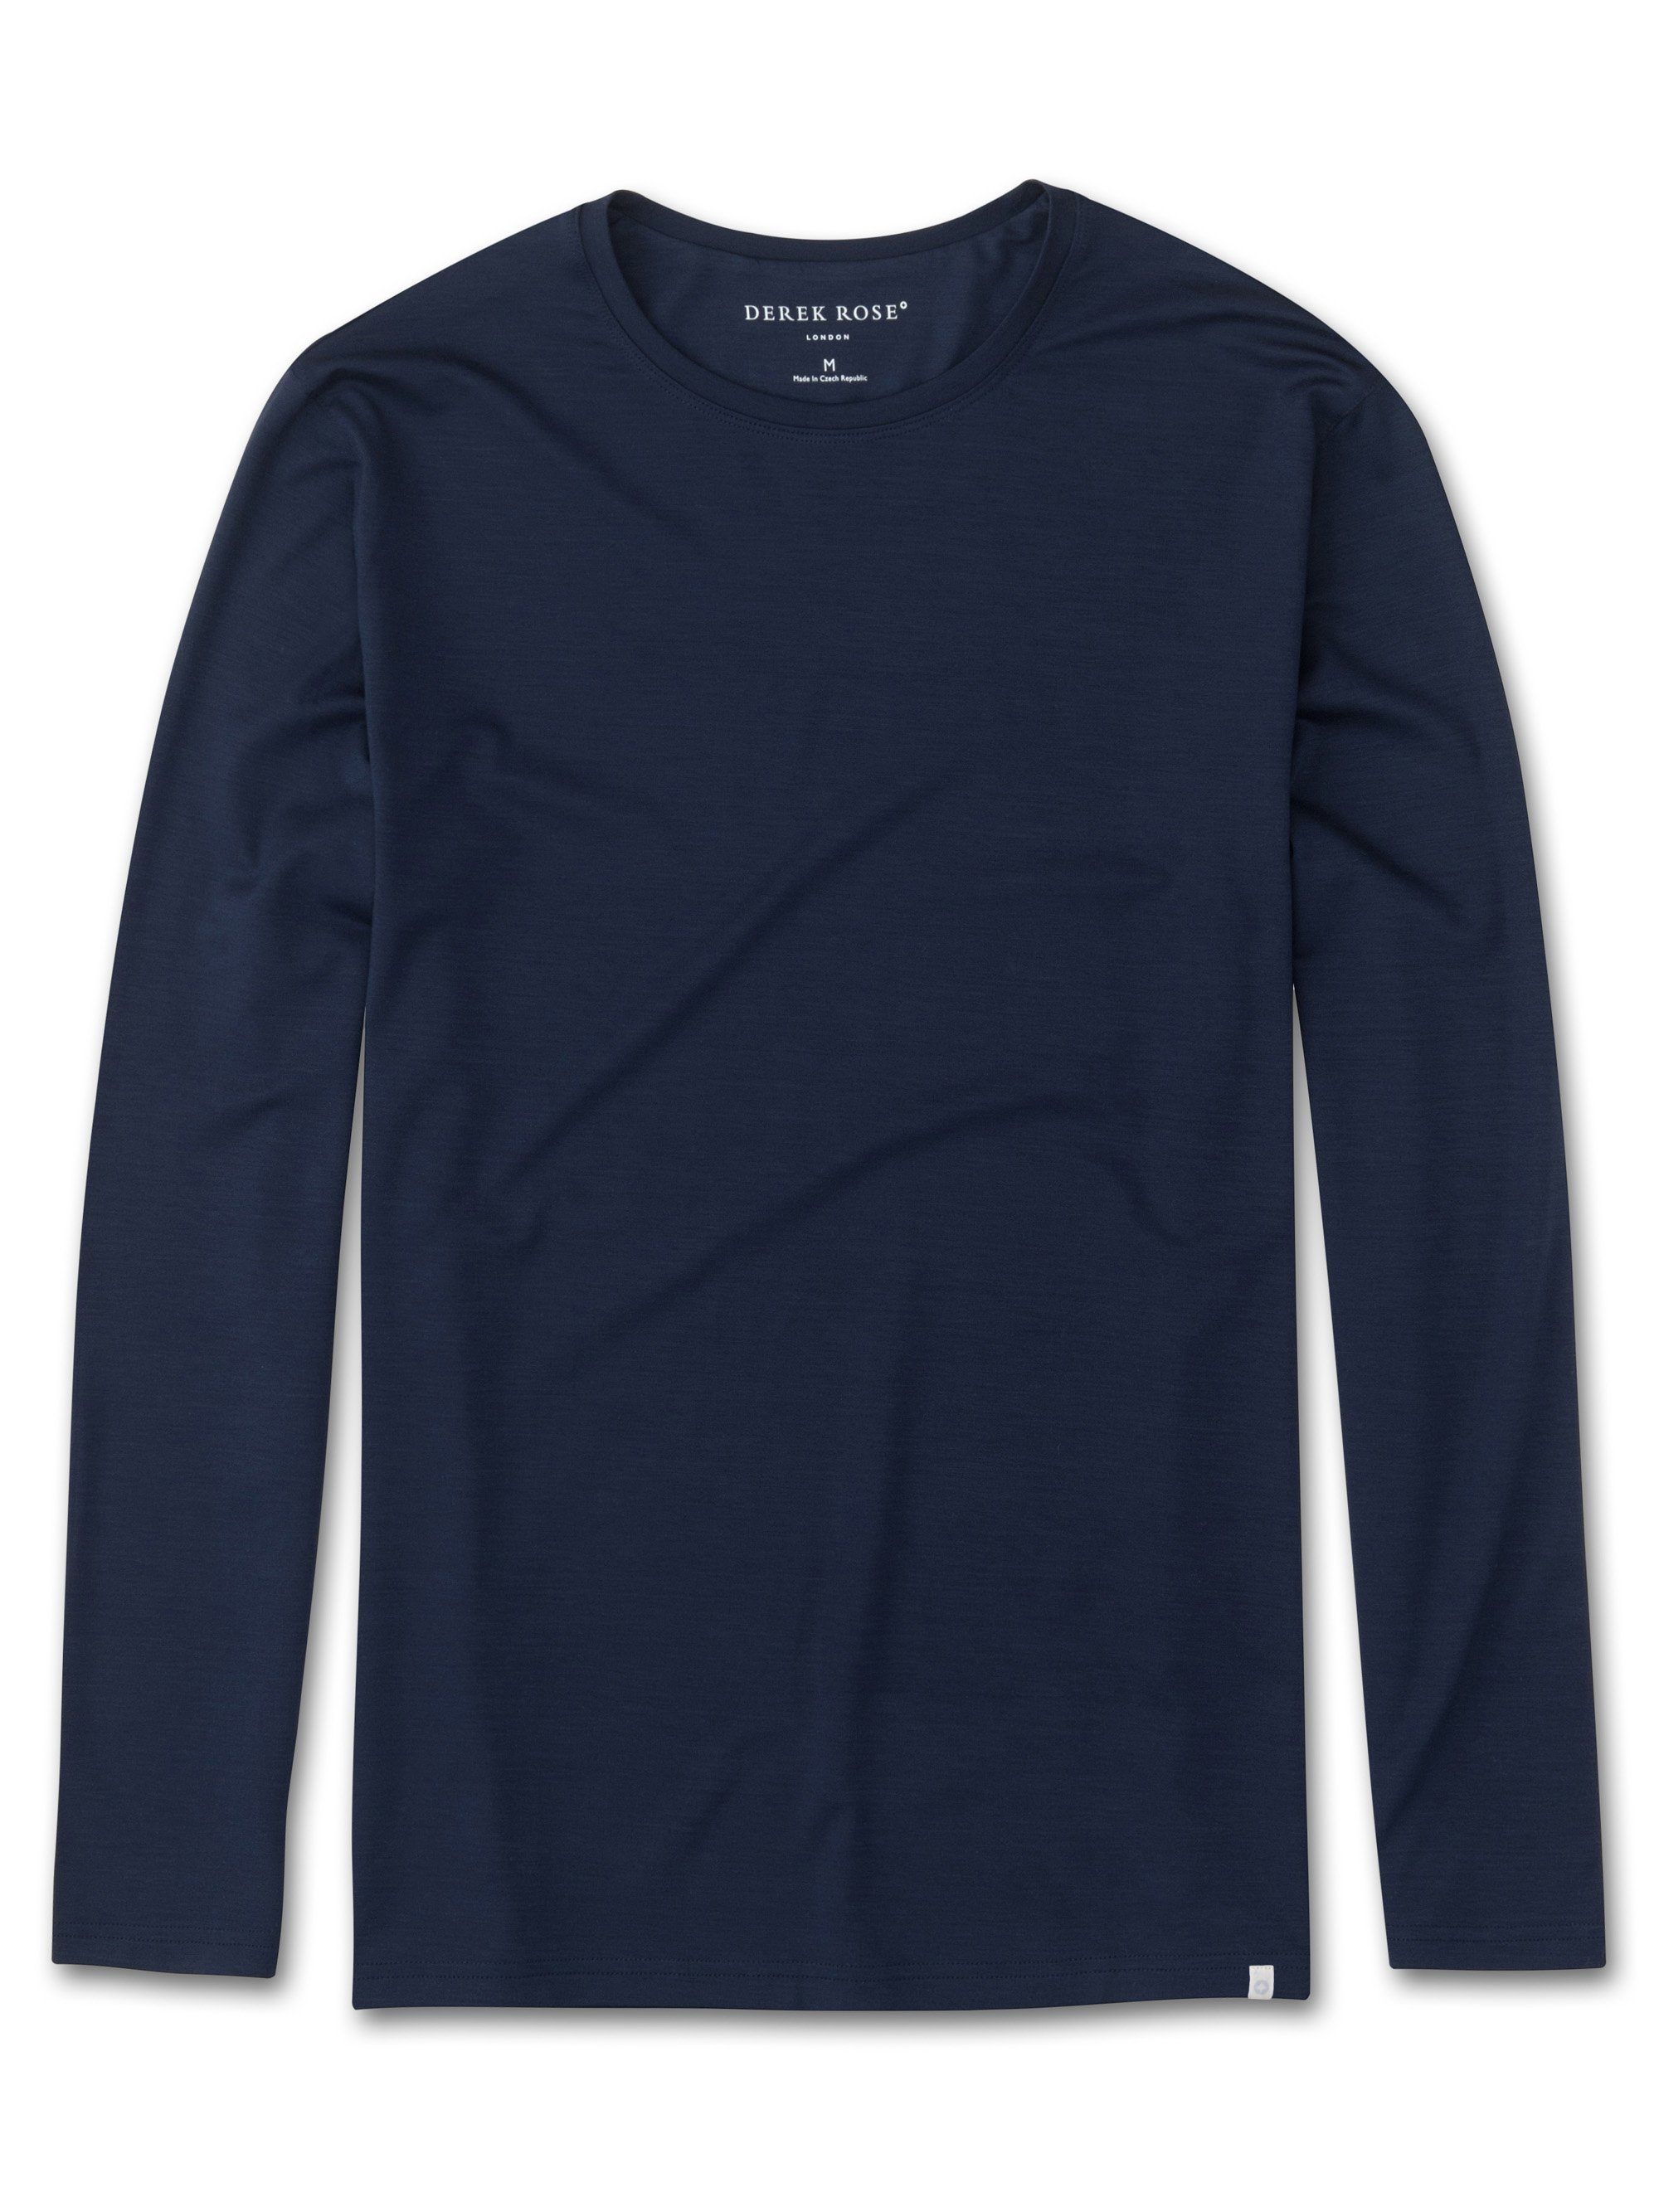 Men's Long Sleeve T-Shirt Basel Micro Modal Stretch Navy